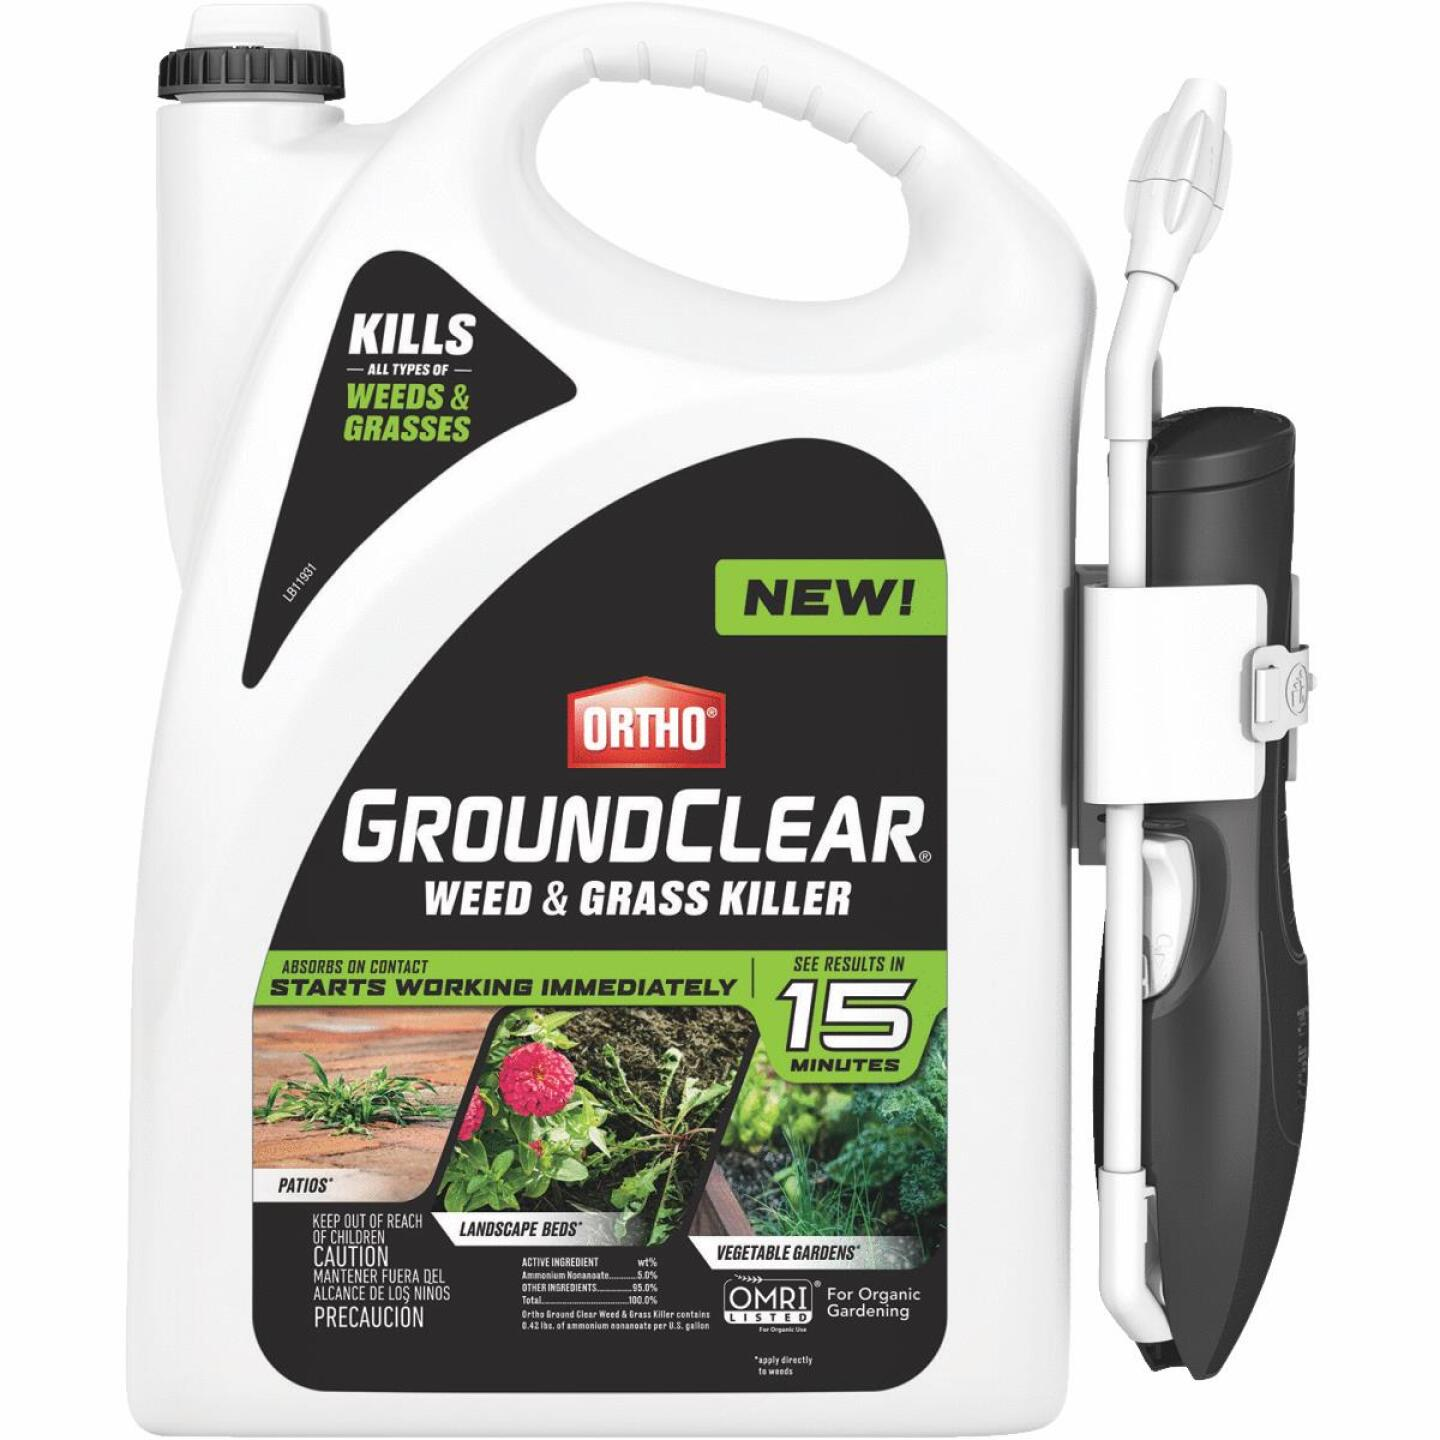 Ortho GroundClear 1 Gal. Ready To Use Wand Sprayer Weed & Grass Killer Image 1